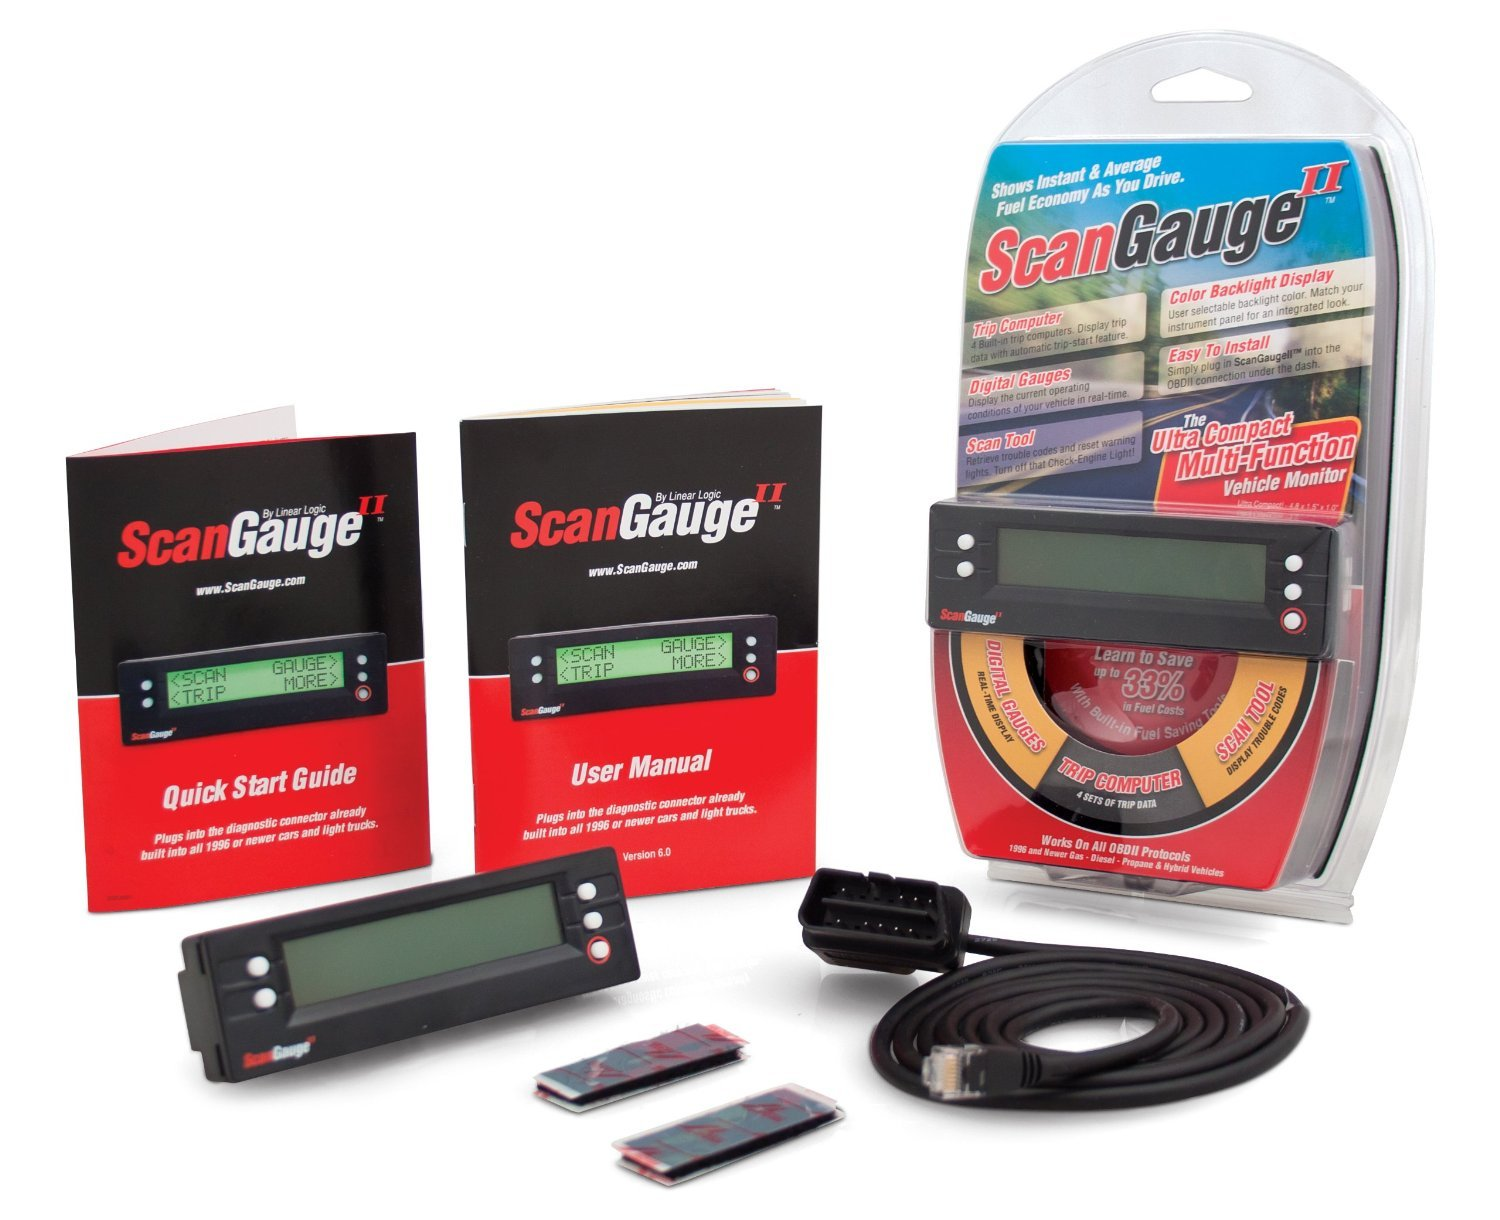 ScanGauge II Ultra Compact 3-in-1 Automotive Computer with Customizable Real-Time Fuel Economy Digital Gauges by ScanGauge (Image #1)